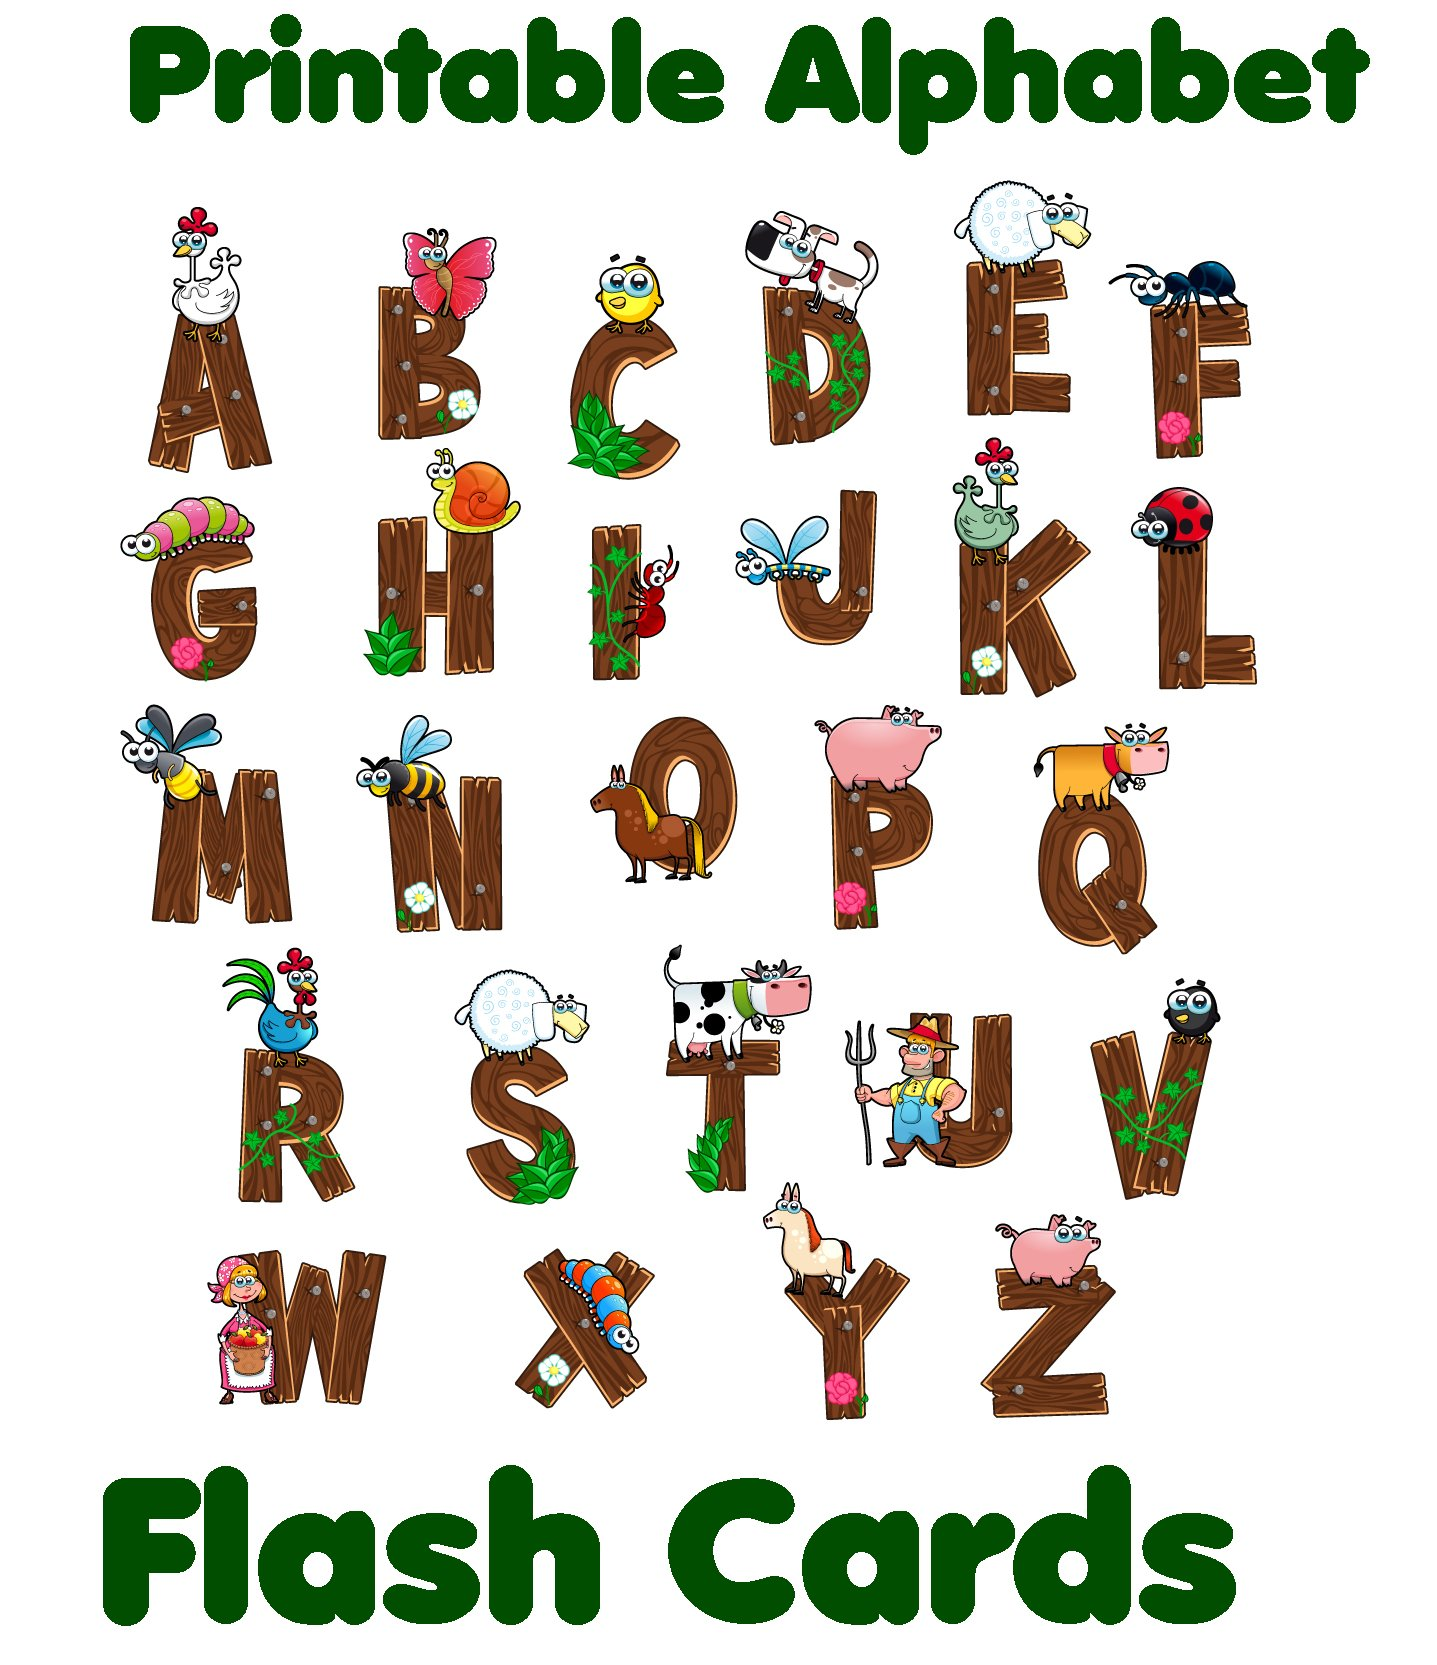 photo regarding Printable Abc Flash Cards identified as Alphabet Flash Playing cards - Printable Do-it-yourself